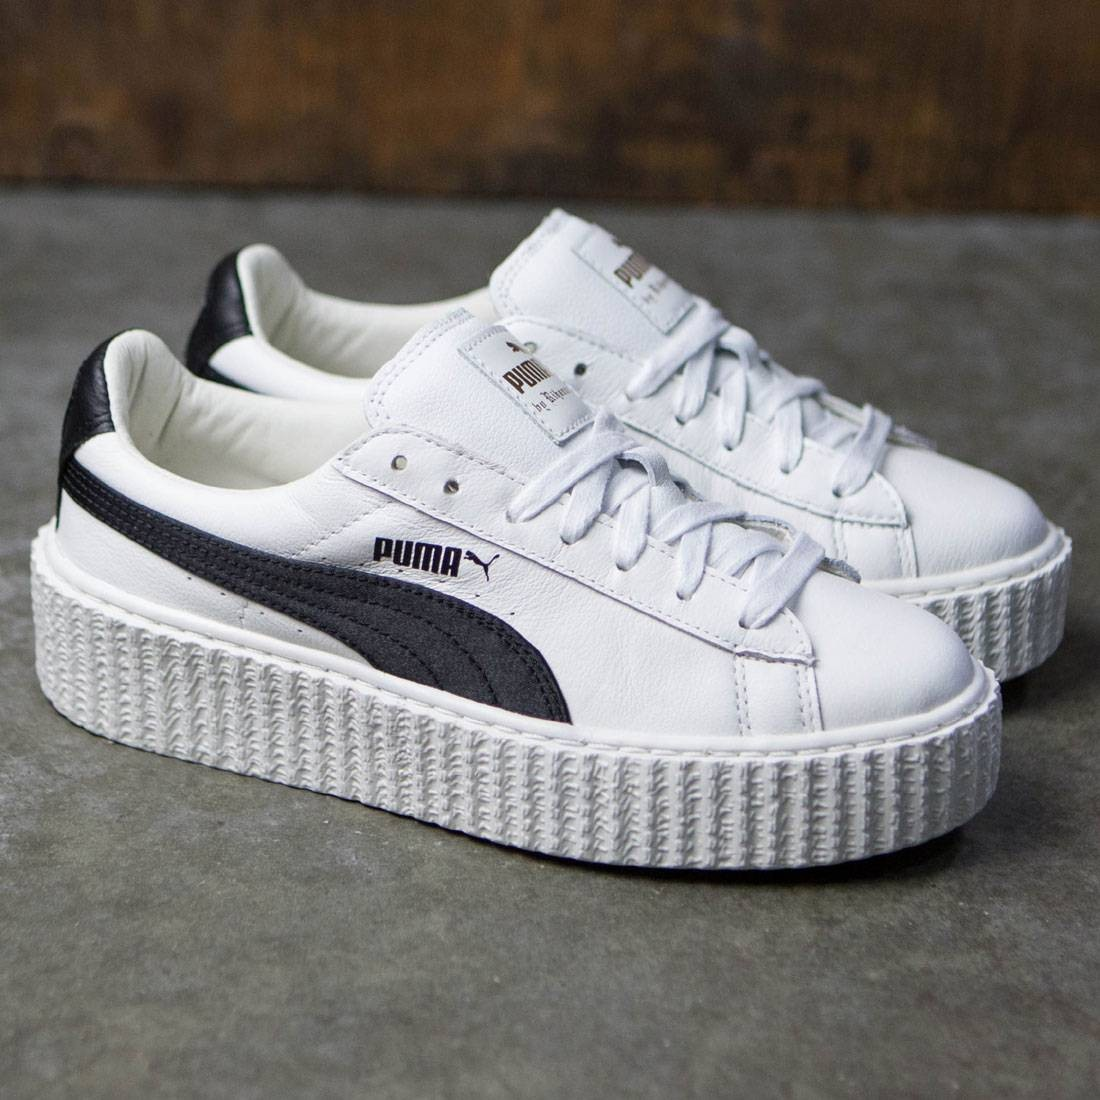 sale retailer cee41 0b9b4 Puma x Fenty By Rihanna Women Creeper - Cracked Leather (white)